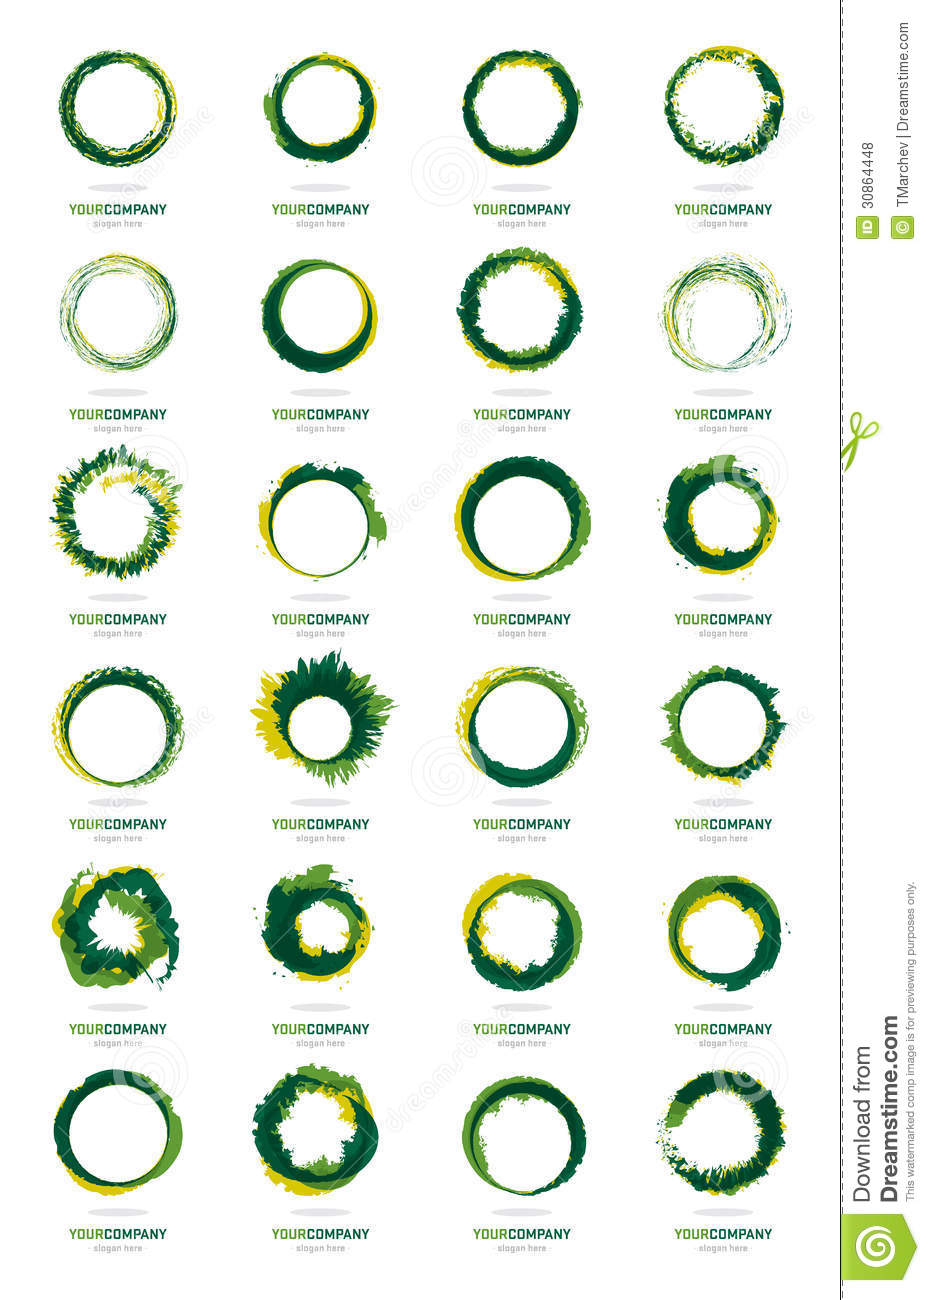 Best Colors For Design : Huge logo designs collection royalty free stock photos